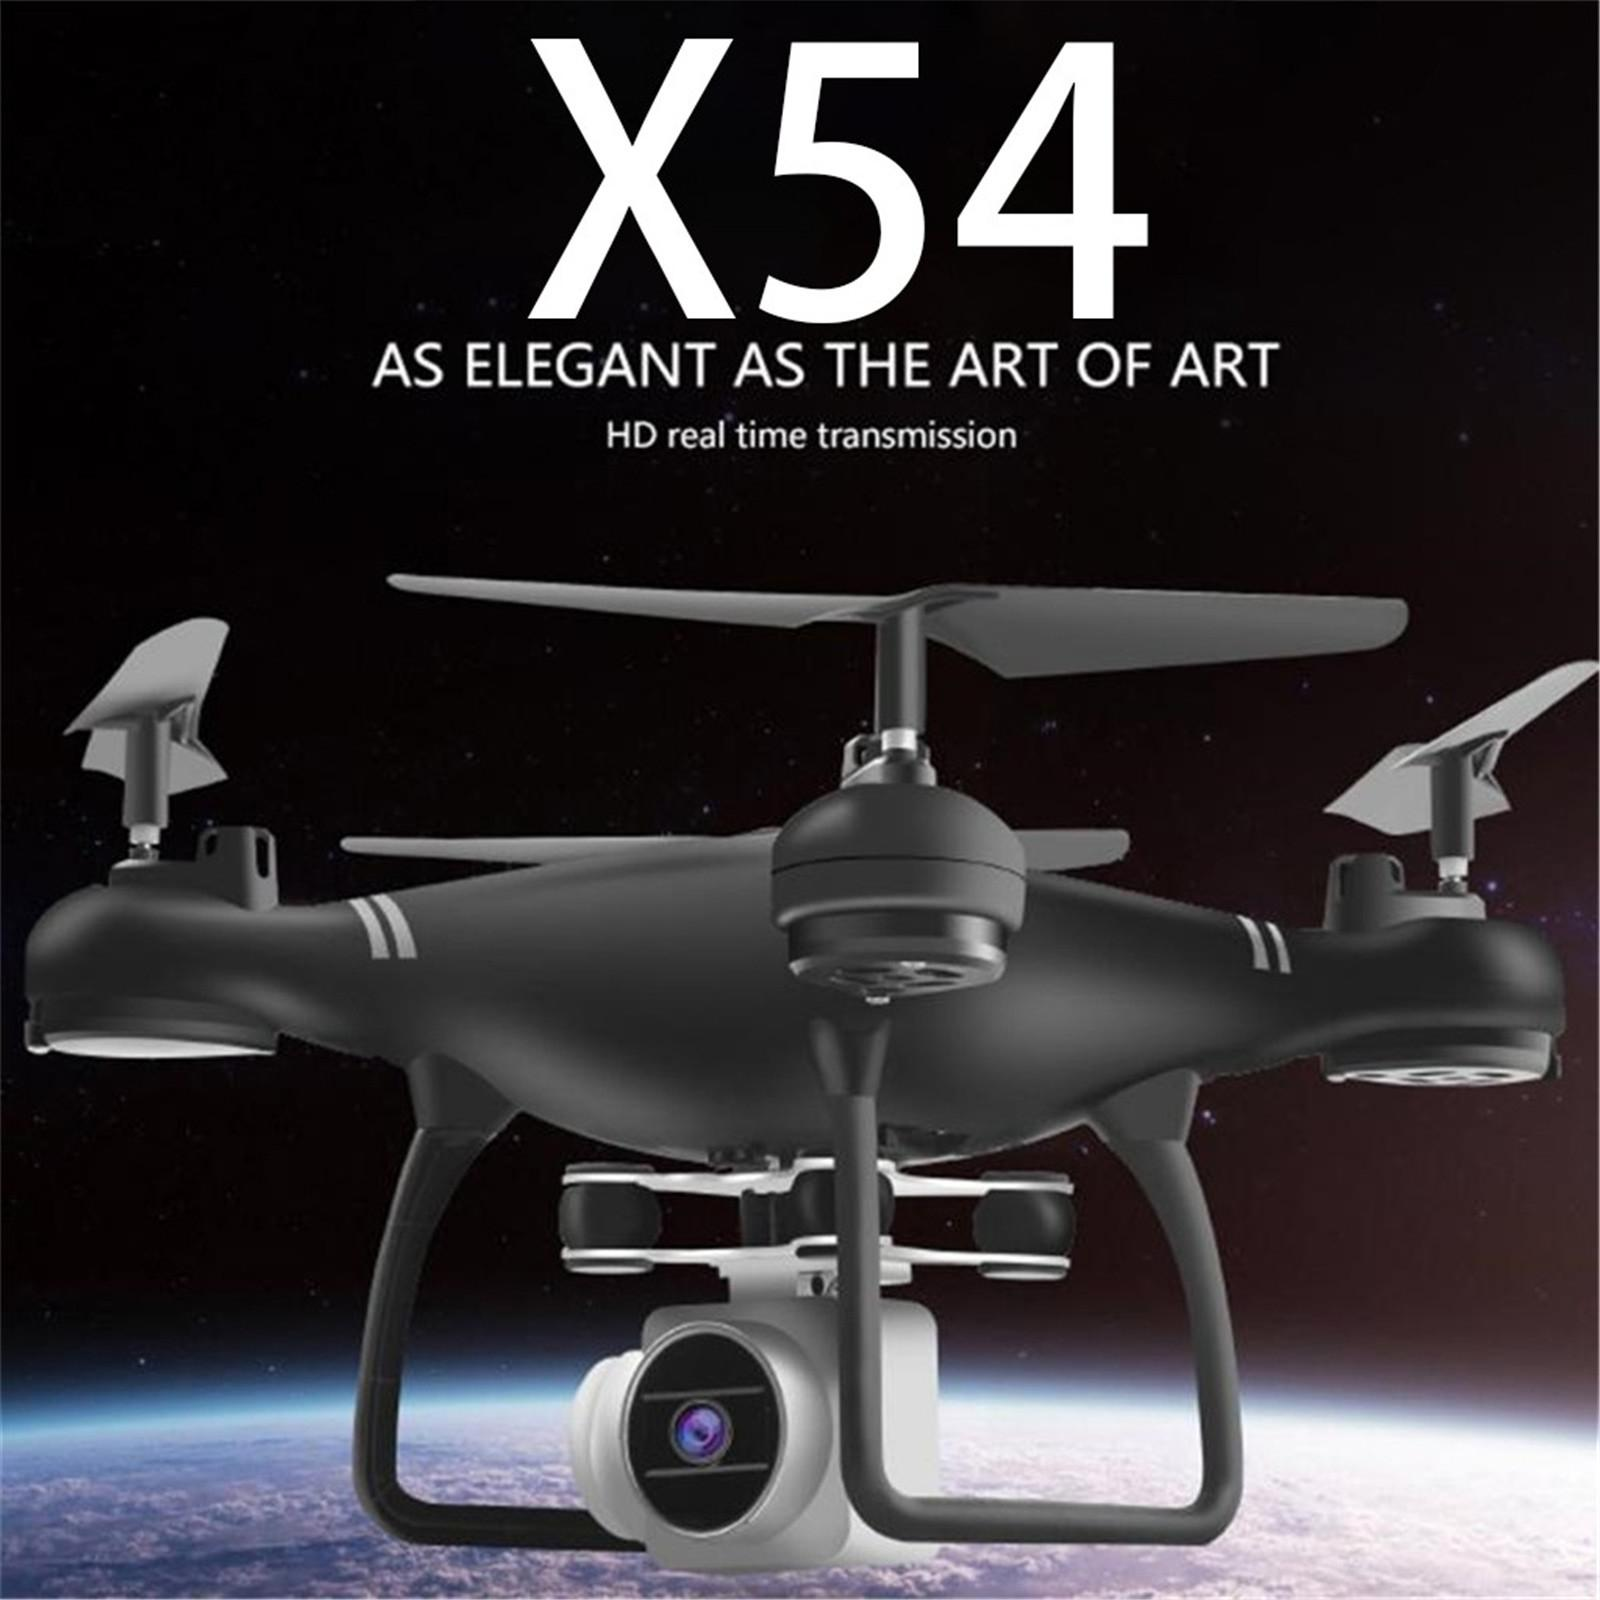 2.4G Wifi Remote Control RC Drone Dual HD Camera Professional Aerial Photography Brushless Motor Foldable Quadcopter